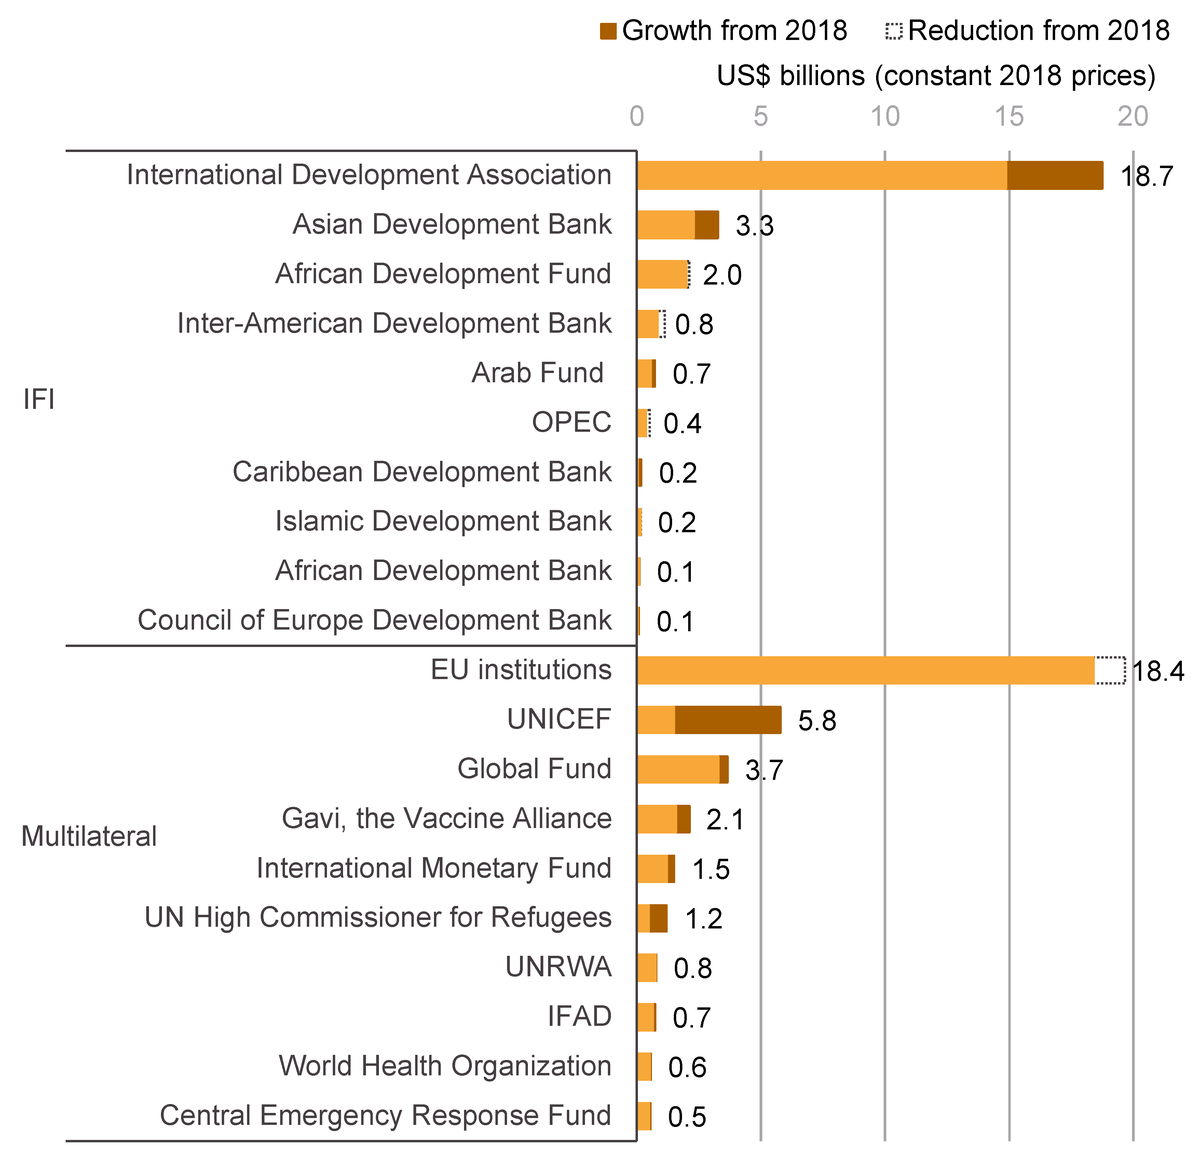 Figure 6: 10 largest donors of ODA among IFIs and multilateral organisations in 2019, and changes in disbursements, 2018–2019